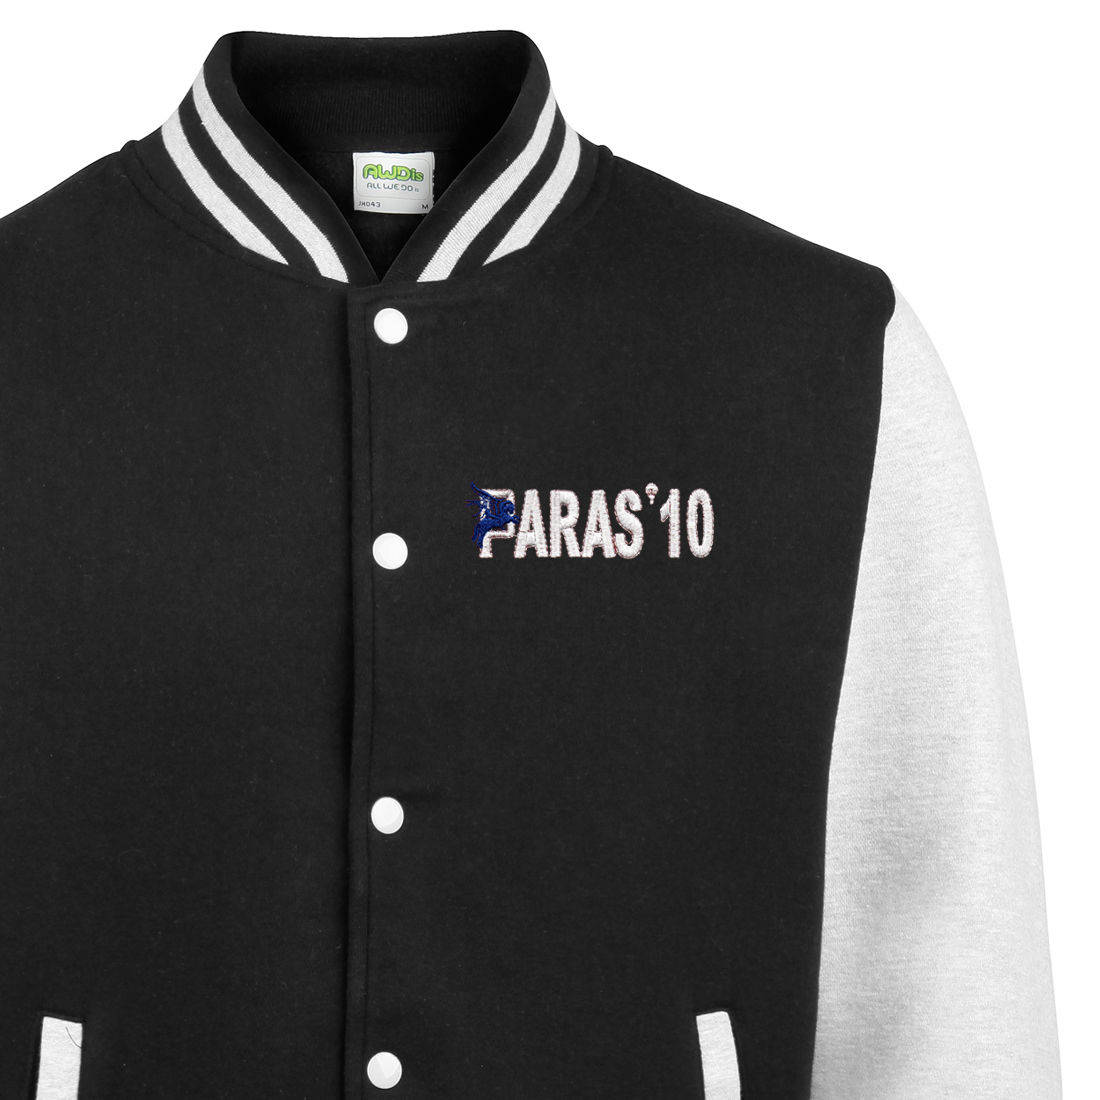 Varsity Jacket - Black / White - Paras 10